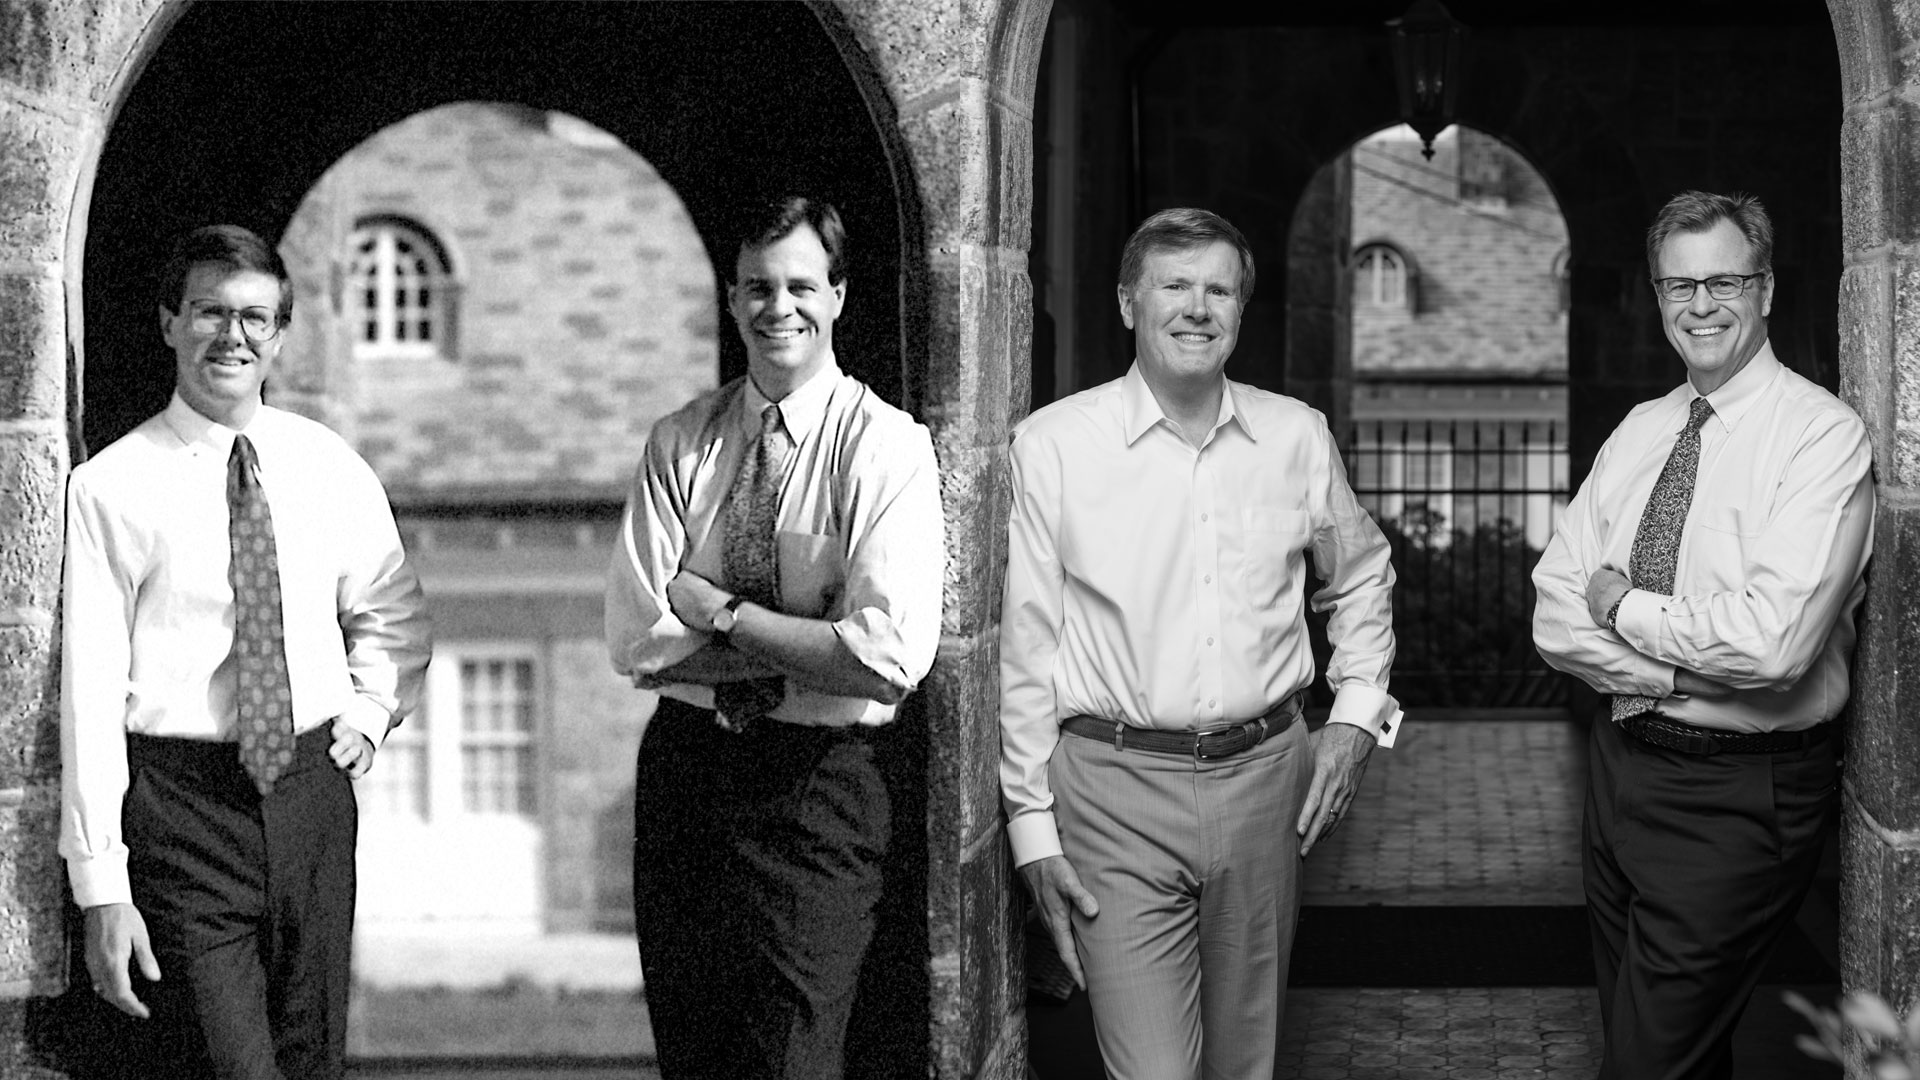 MPS: 25 Years in Greenville, Pictured: Joe Pazdan and Brad Smith (25 years ago and today)